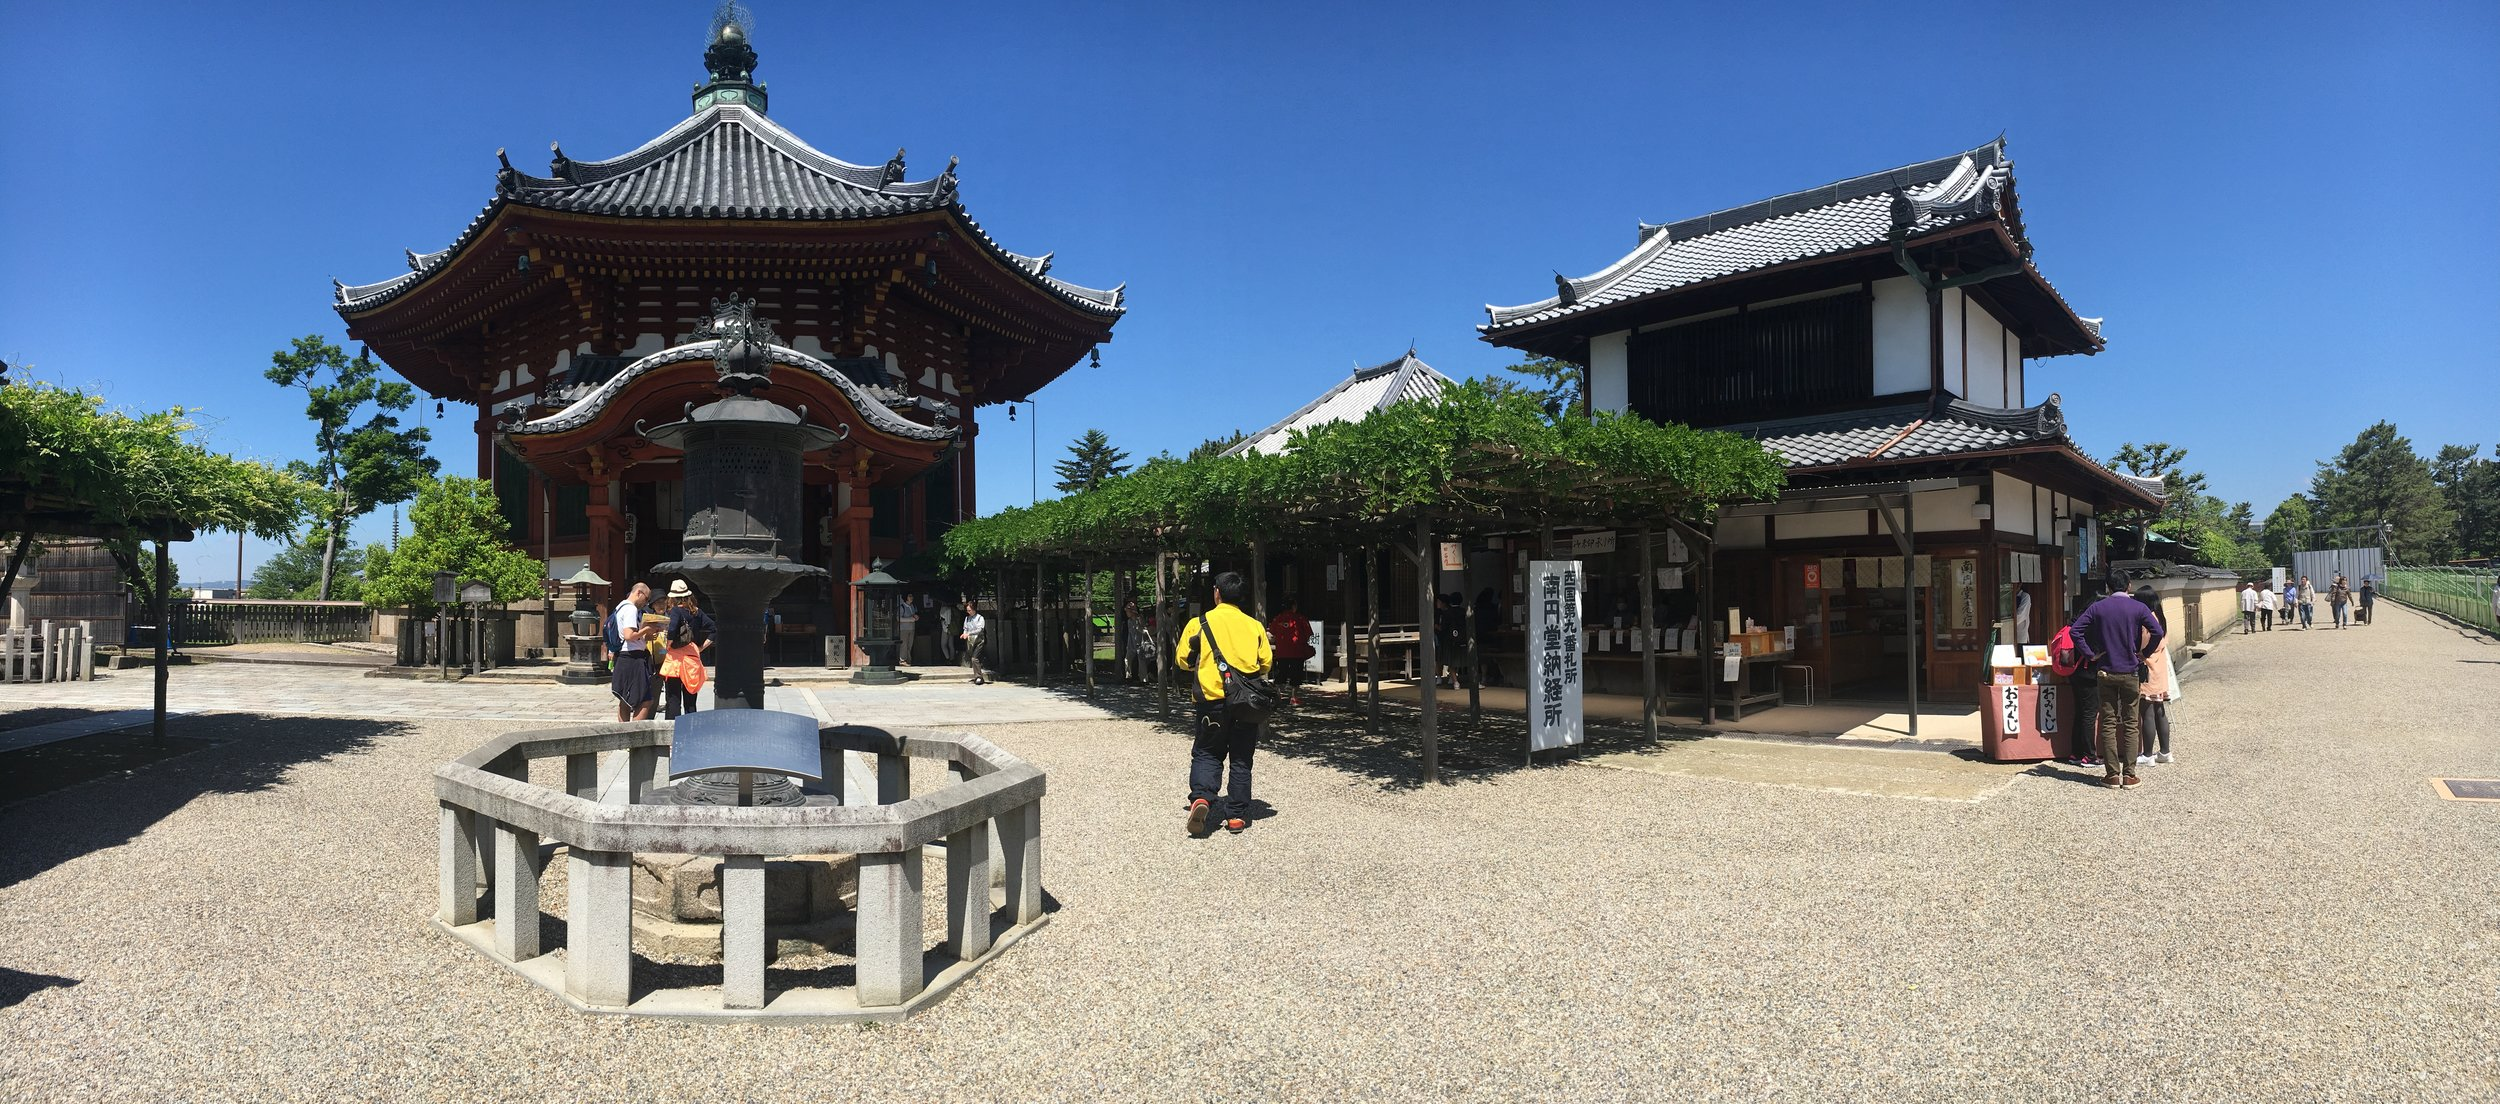 The pavilion with temples, shrines, and shop. Buddhist on the left.